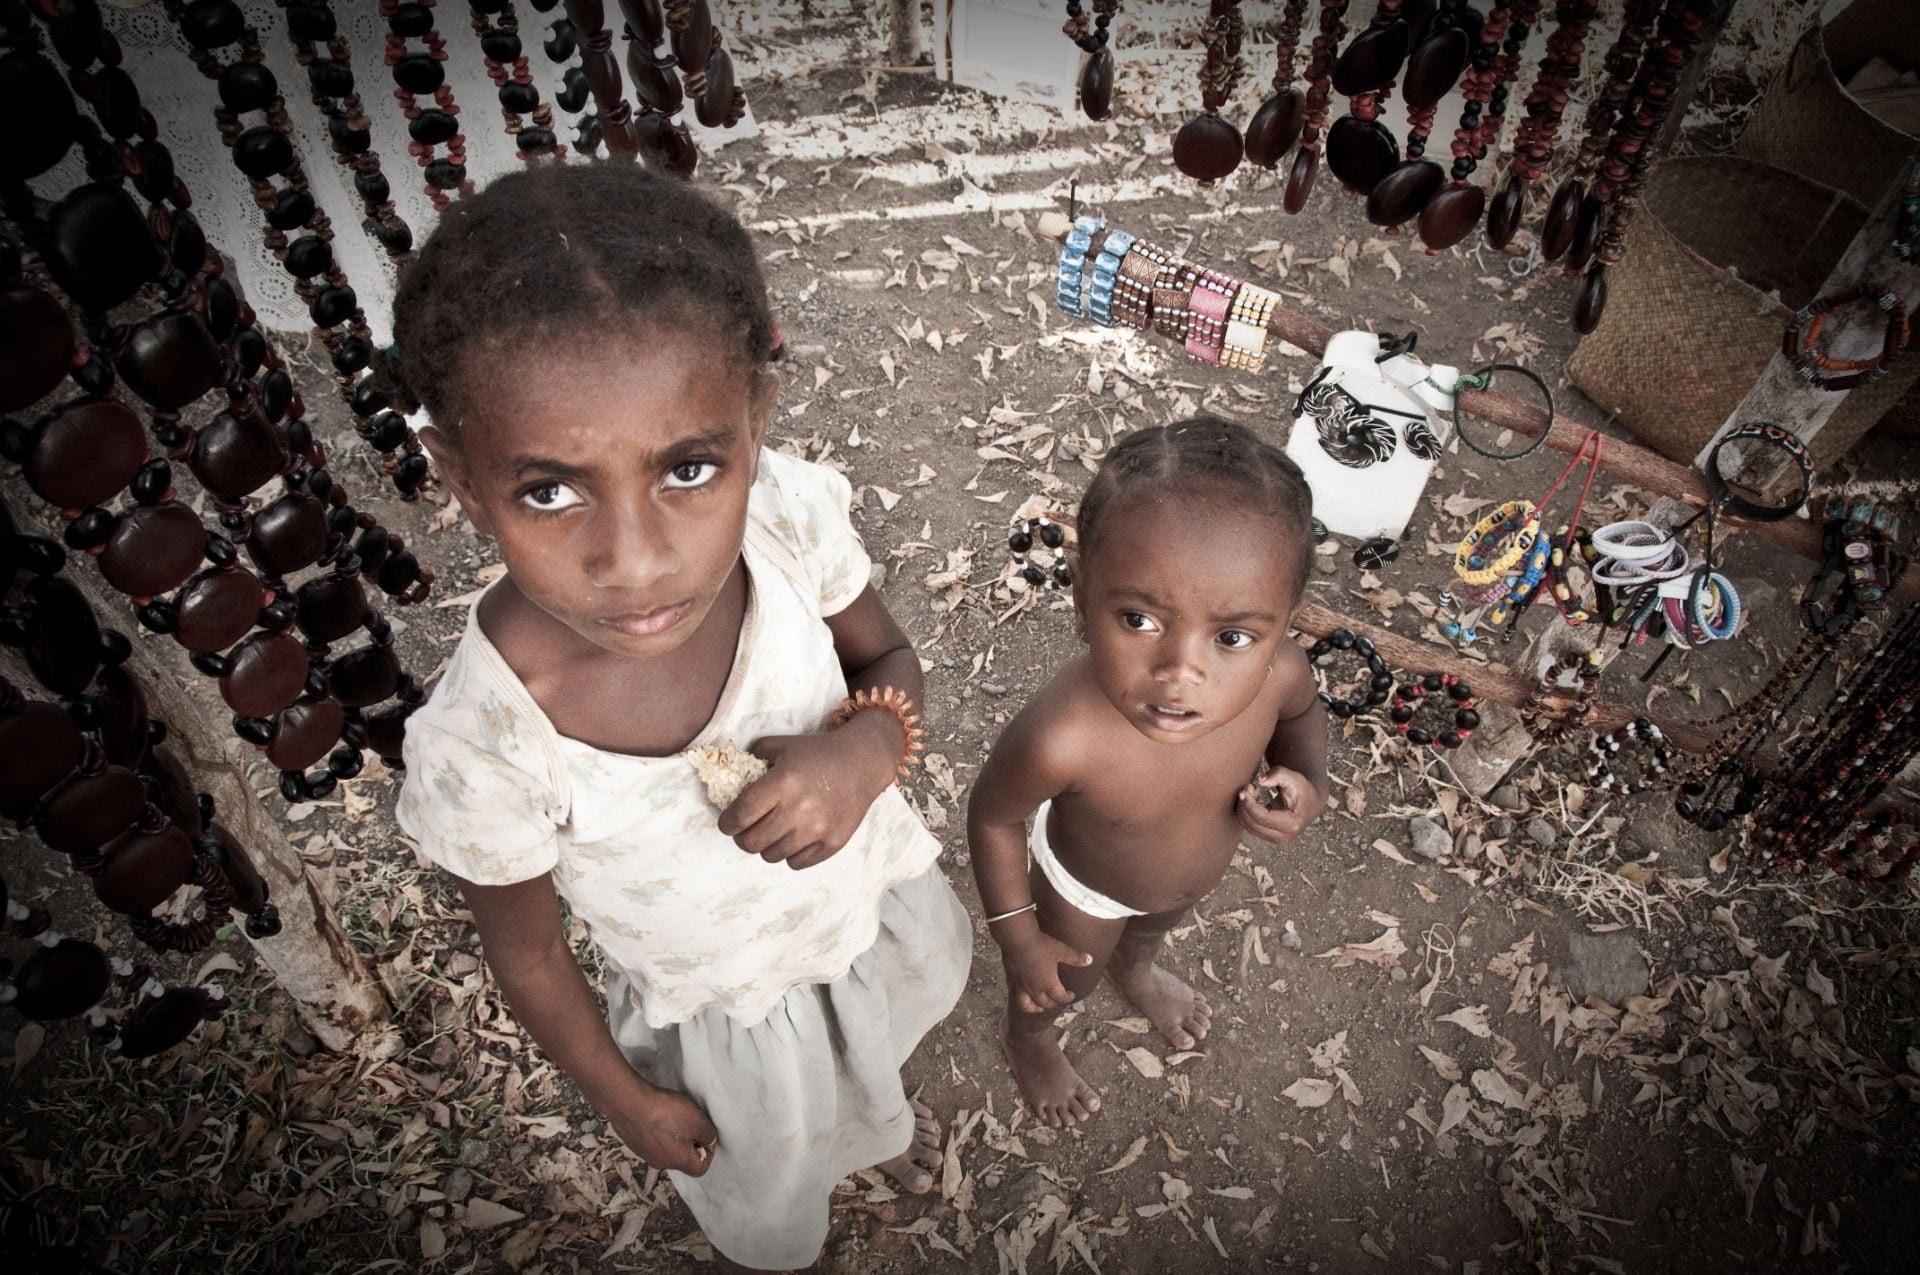 Children in Monrovia. Source: Giorgio Minguzzi, Creative Commons